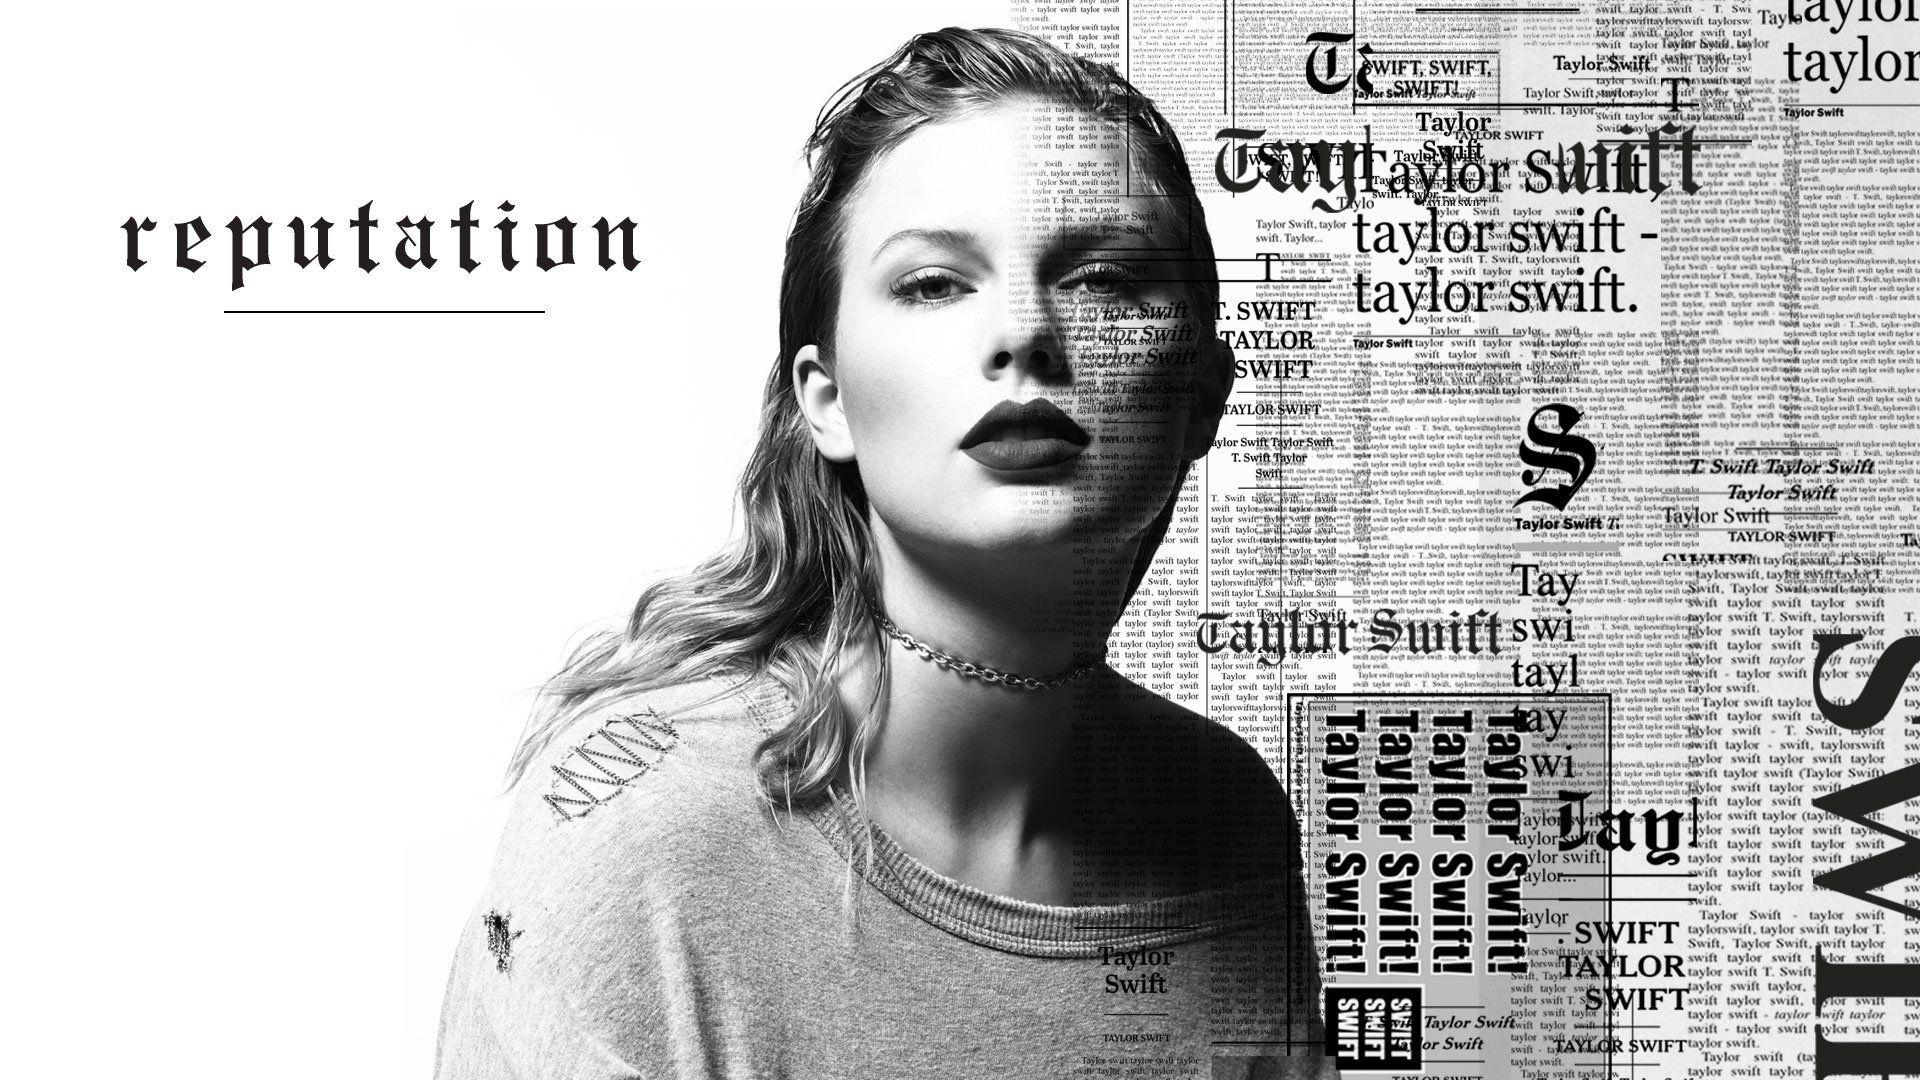 Taylor Swift Reputation Album Review | POPSUGAR Entertainment